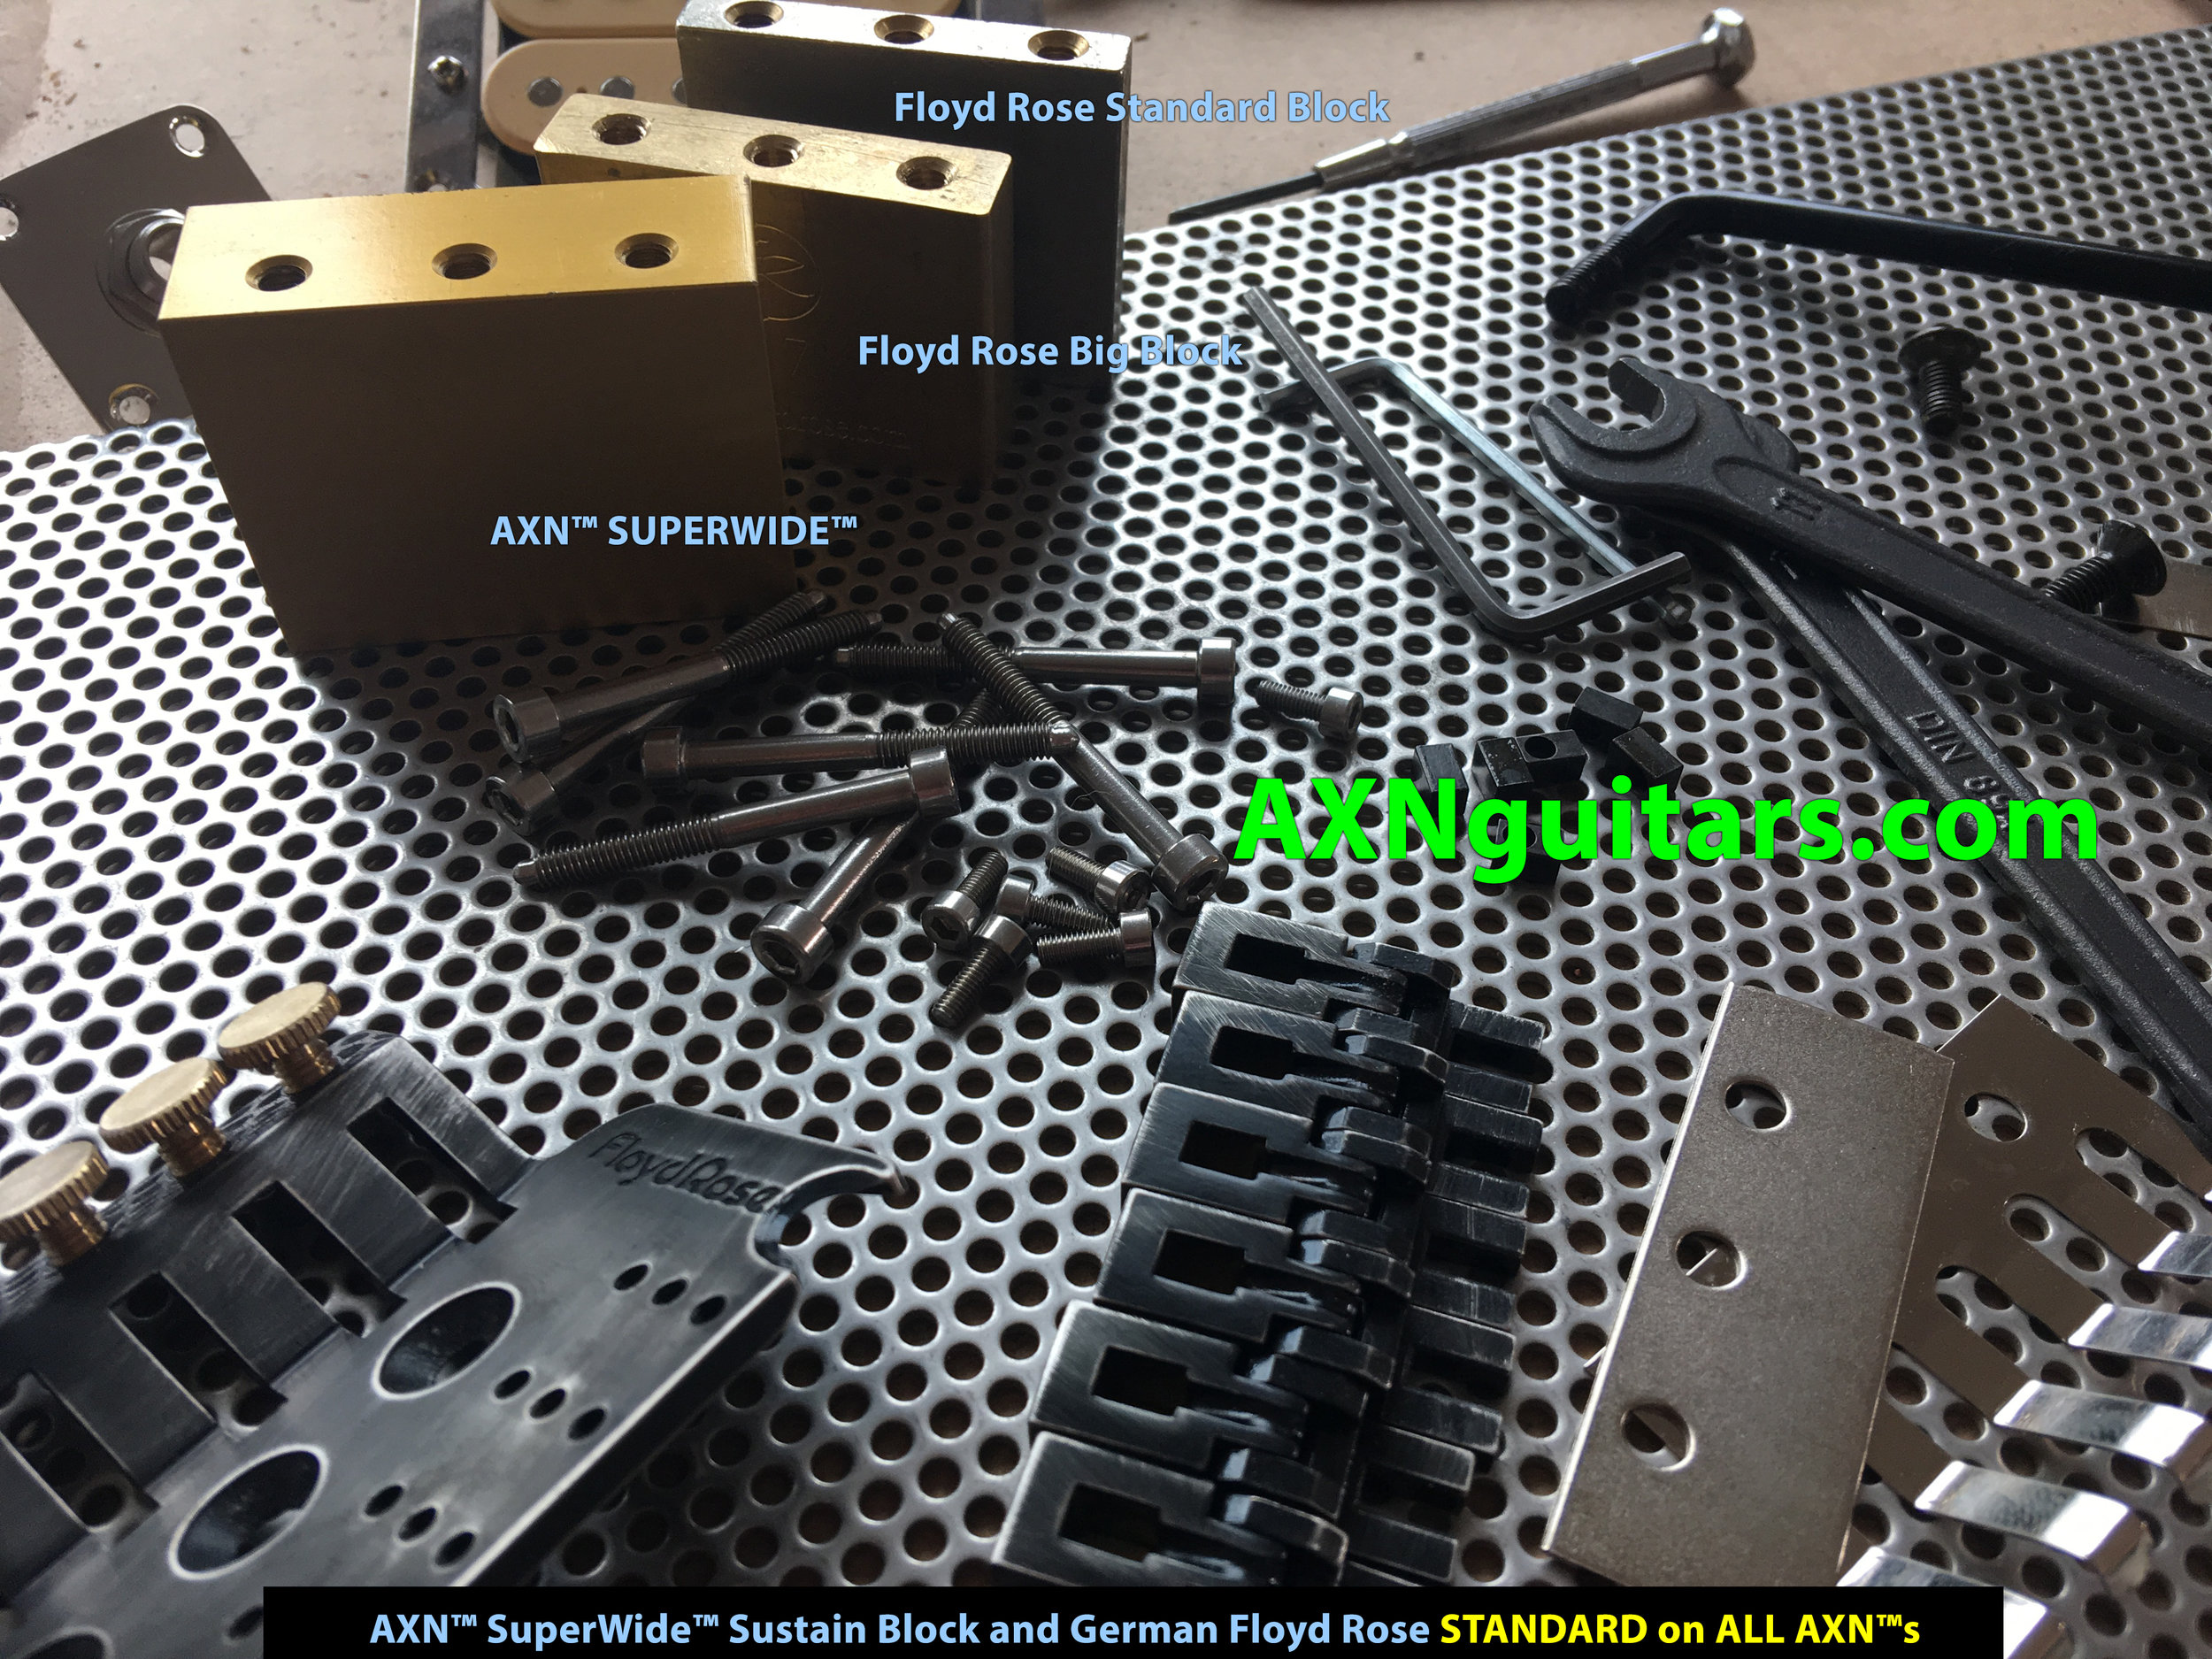 axn-superwide-assembly-002.jpg